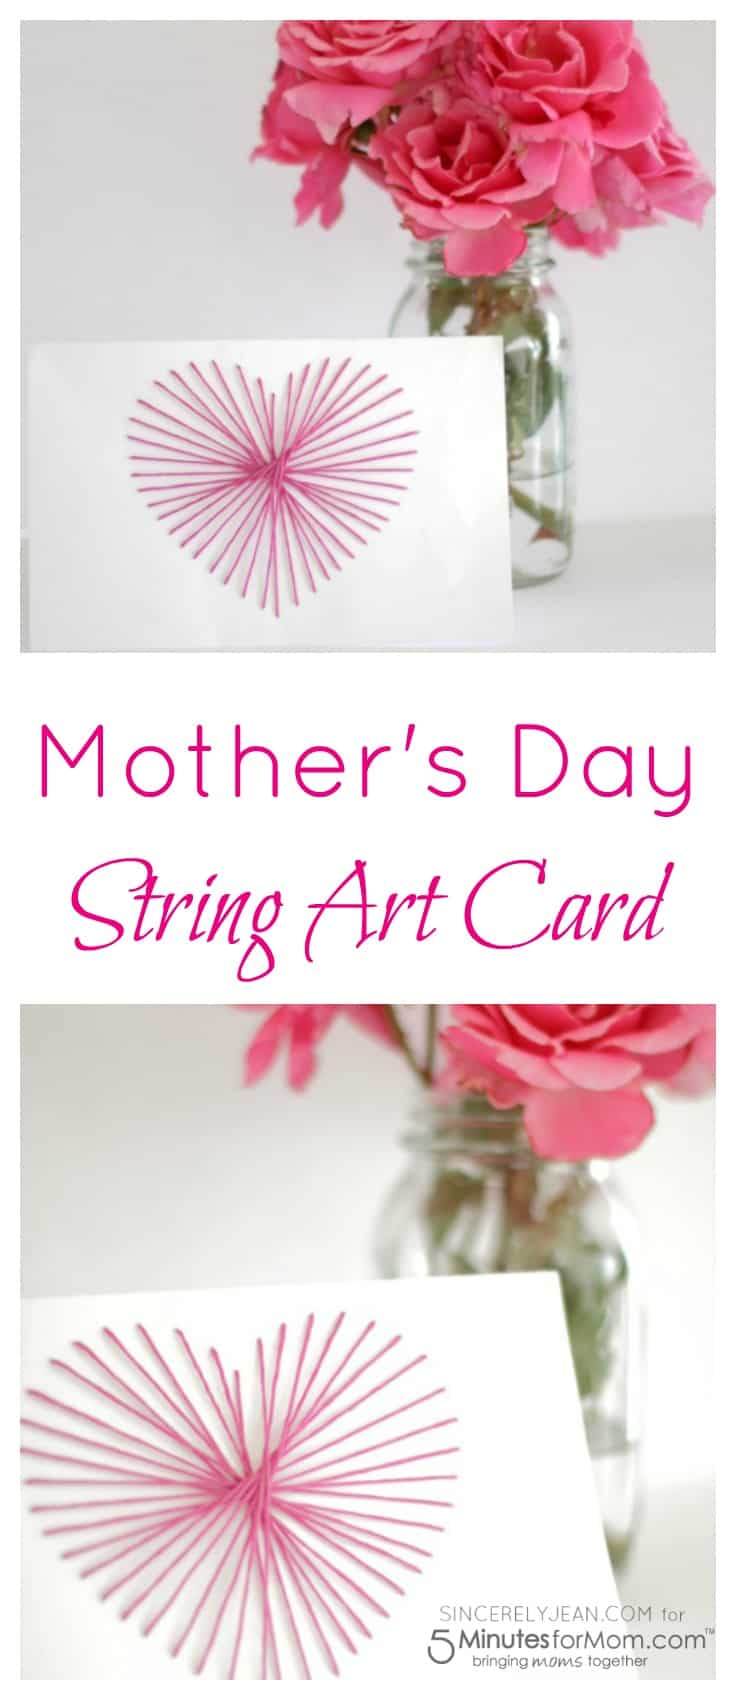 String-Art-Card-For-Mothers-Day